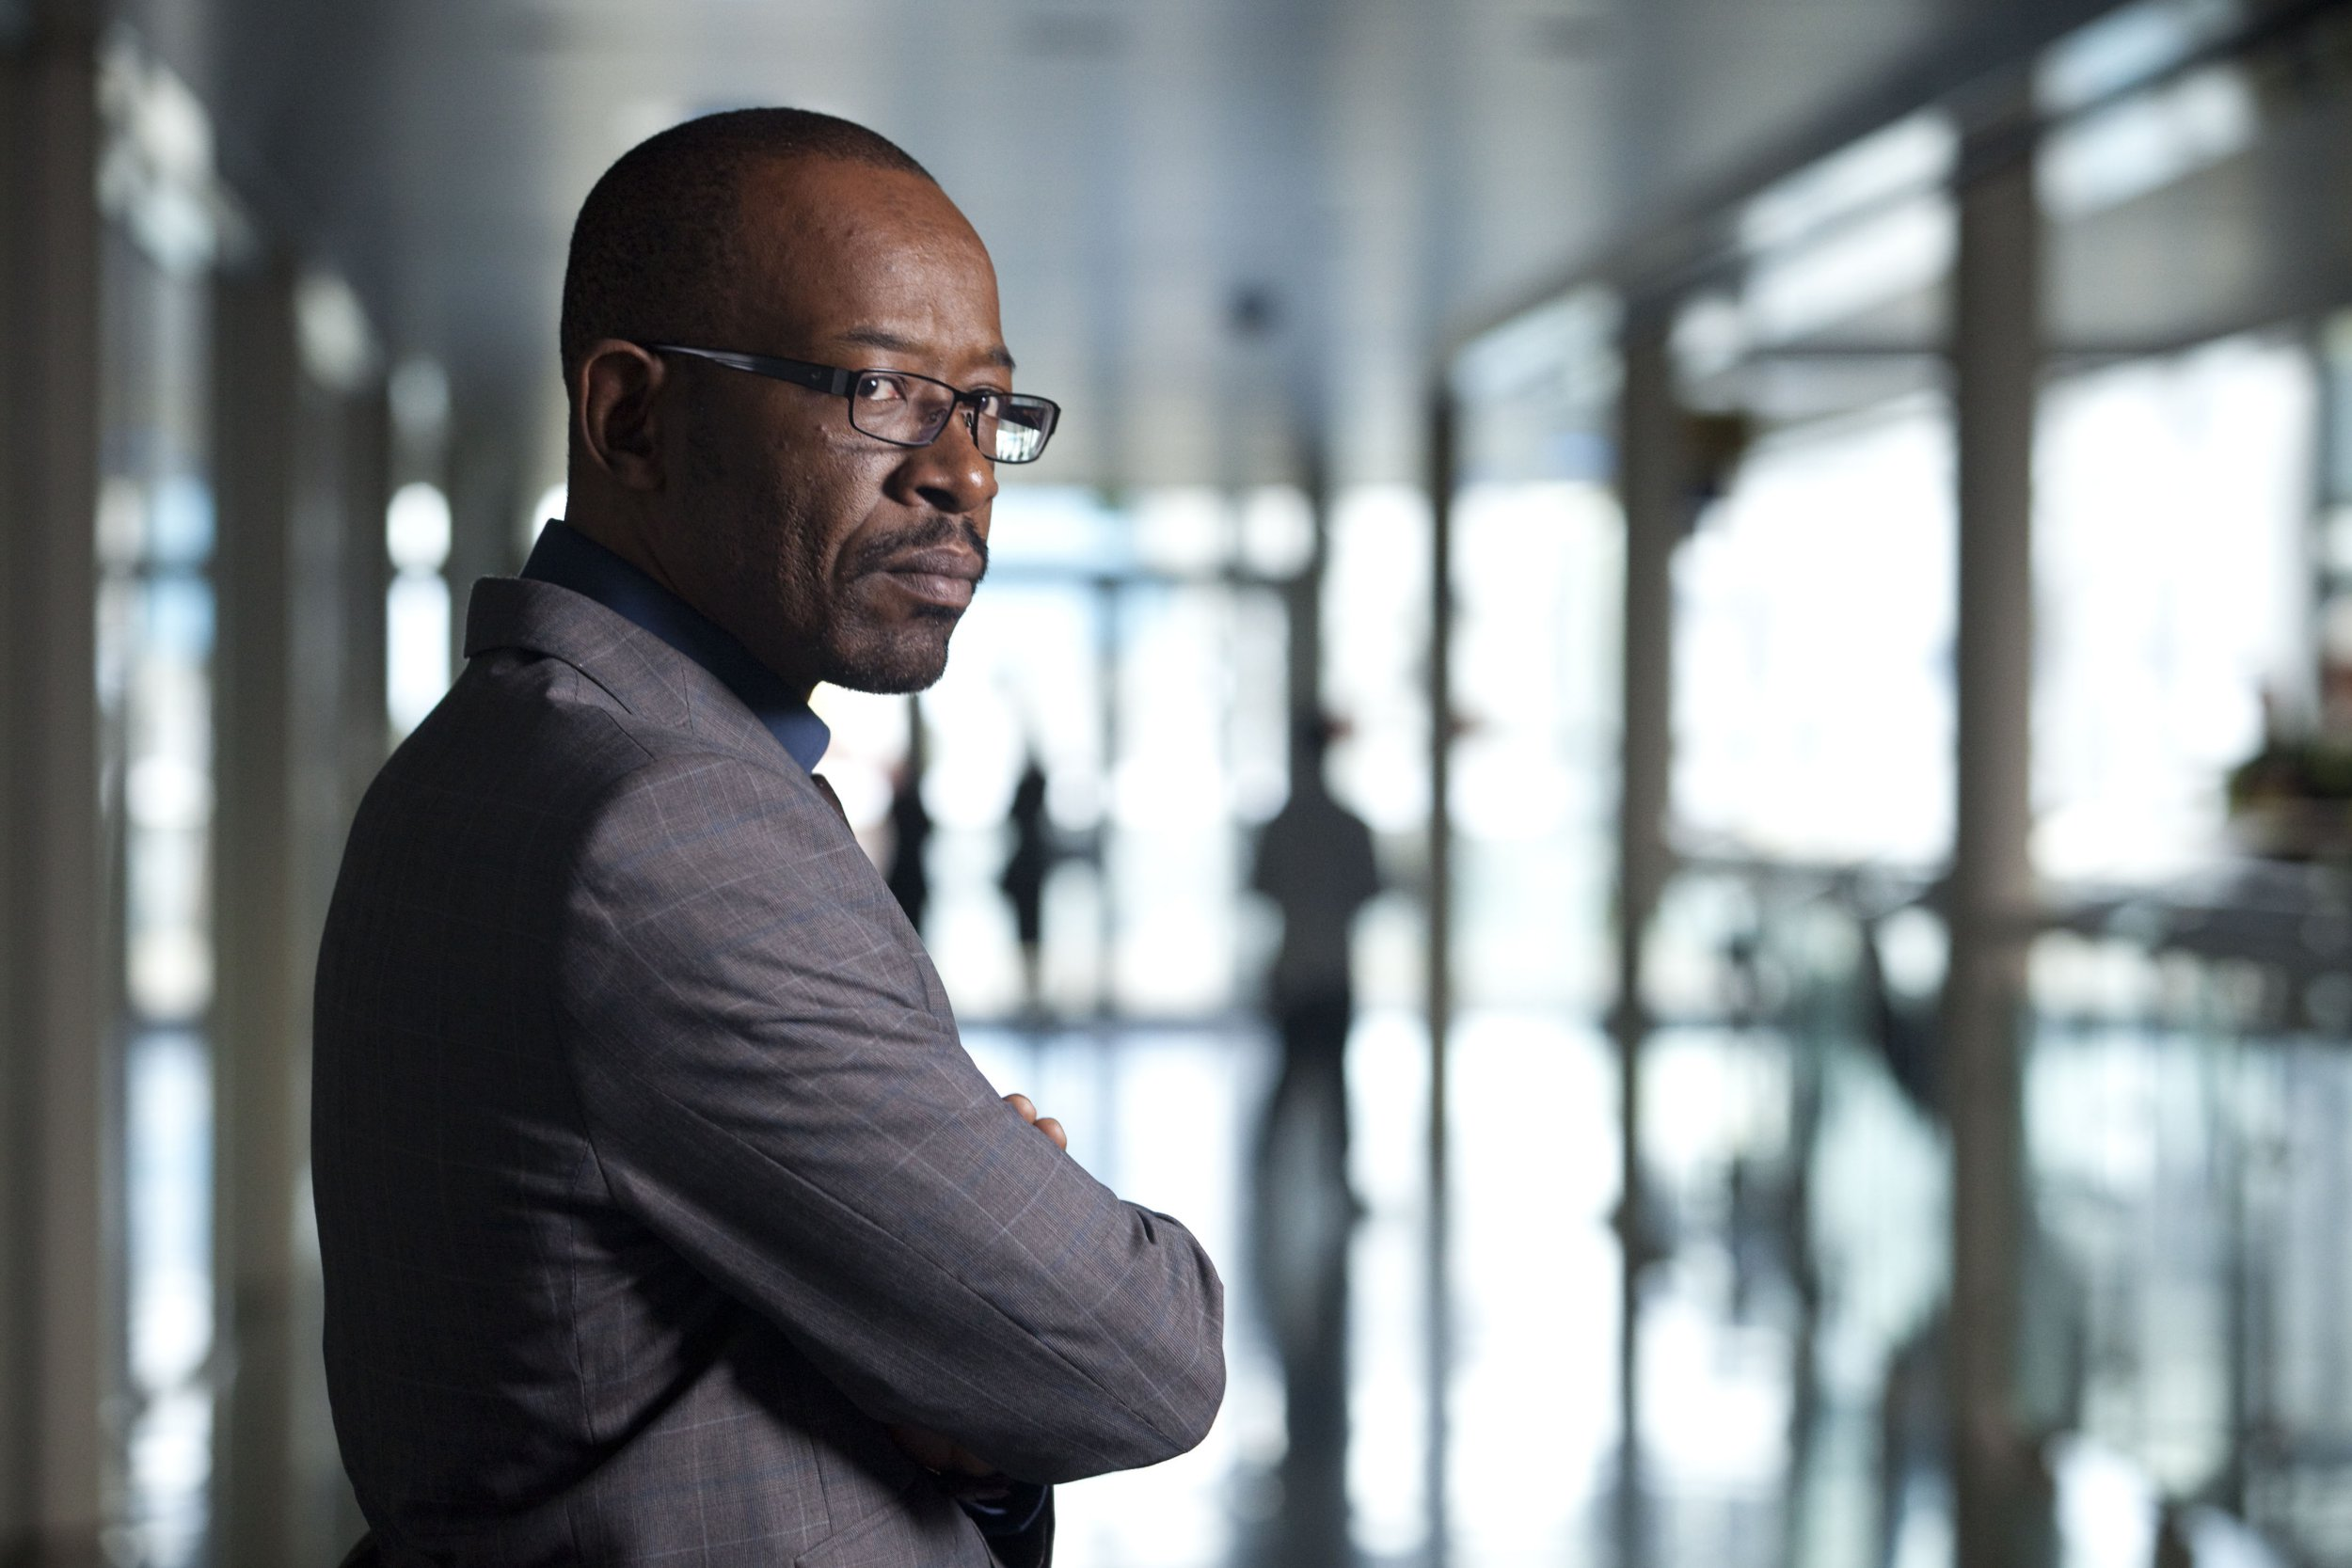 Line Of Duty writer Jed Mercurio planned to bring back Tony Gates